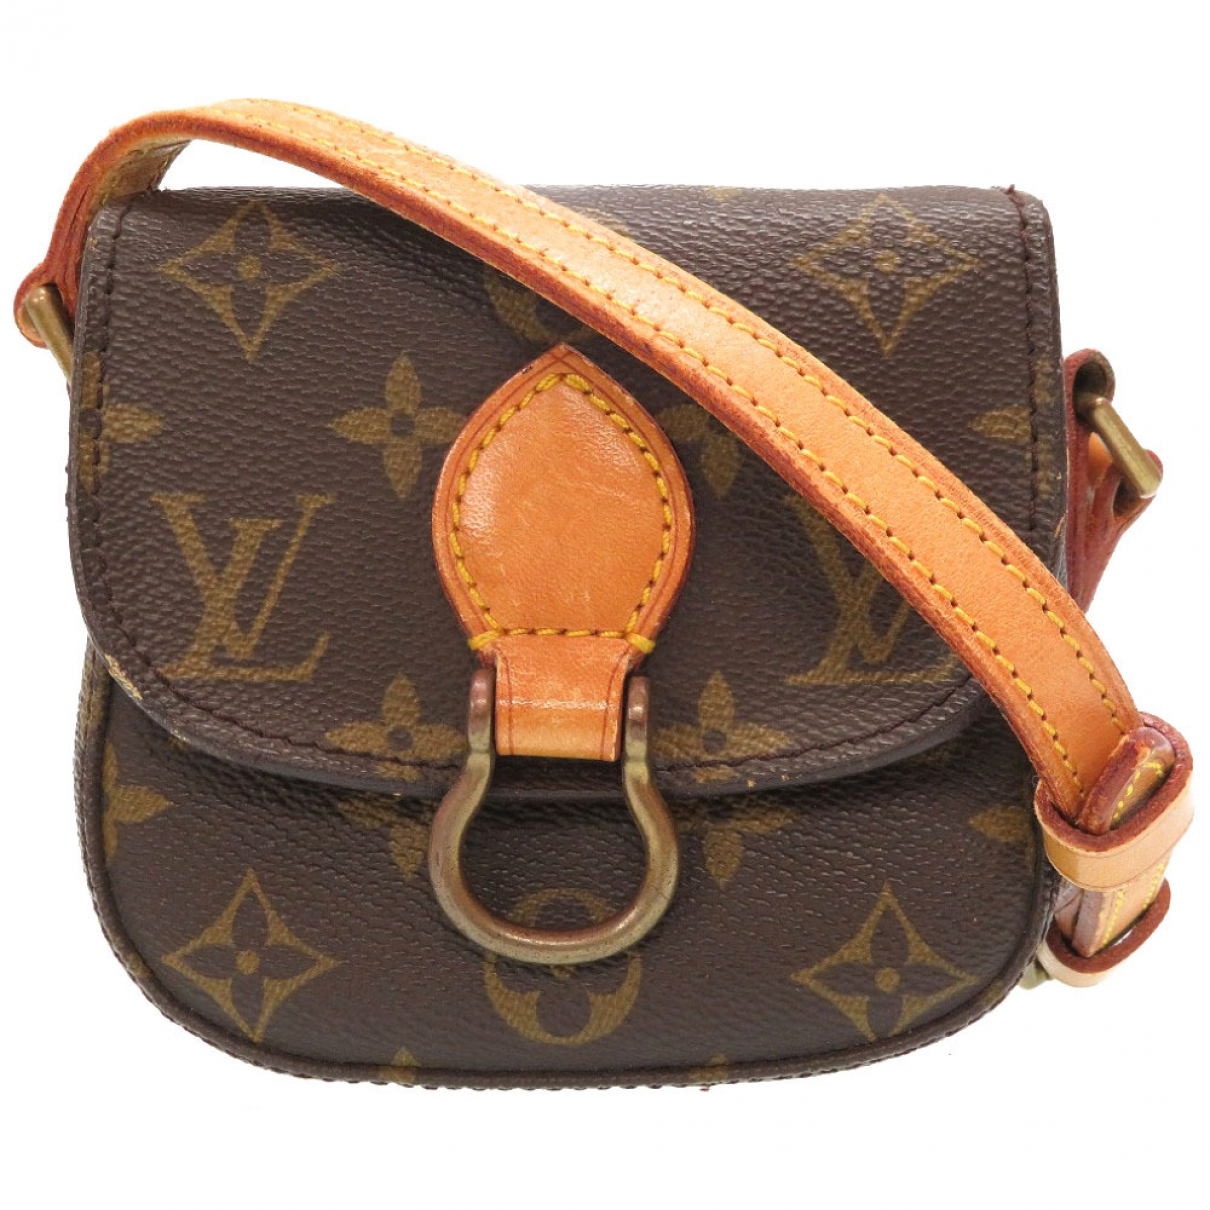 Louis Vuitton - Sac a main Saint Cloud vintage pour femme en toile - marron